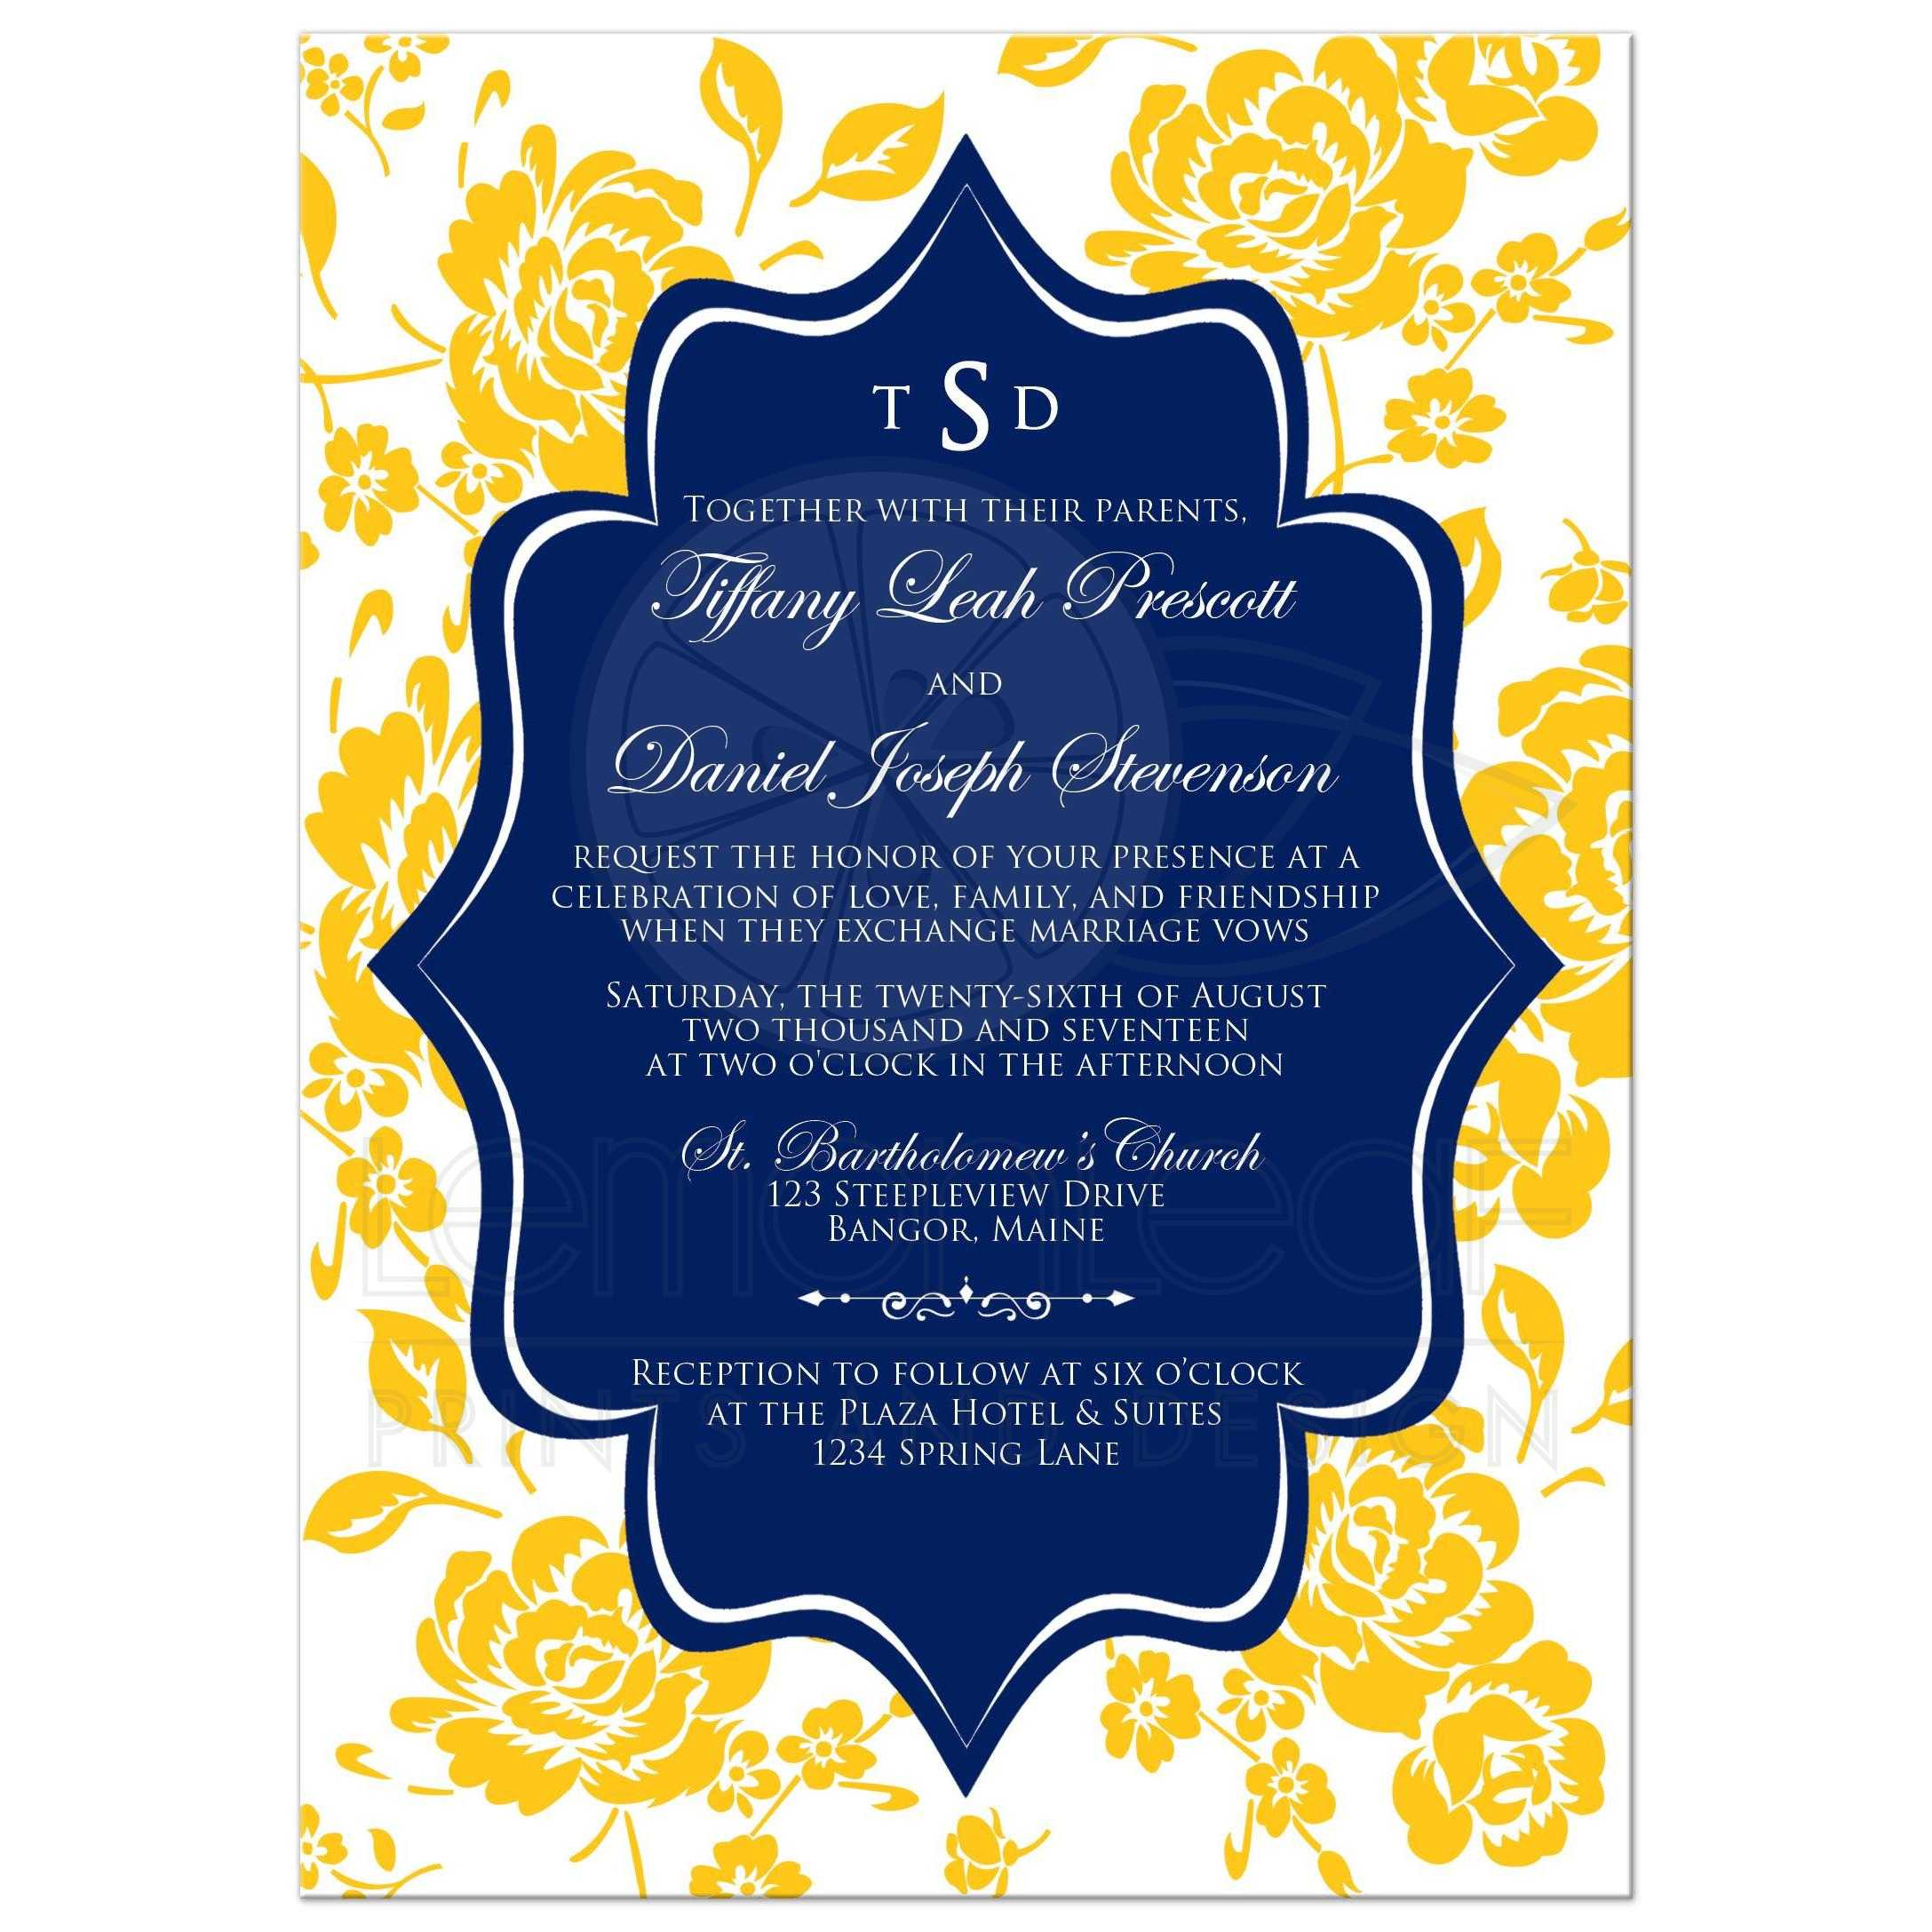 Monogrammed Wedding Invitation | Navy, Yellow, White Floral | Scroll